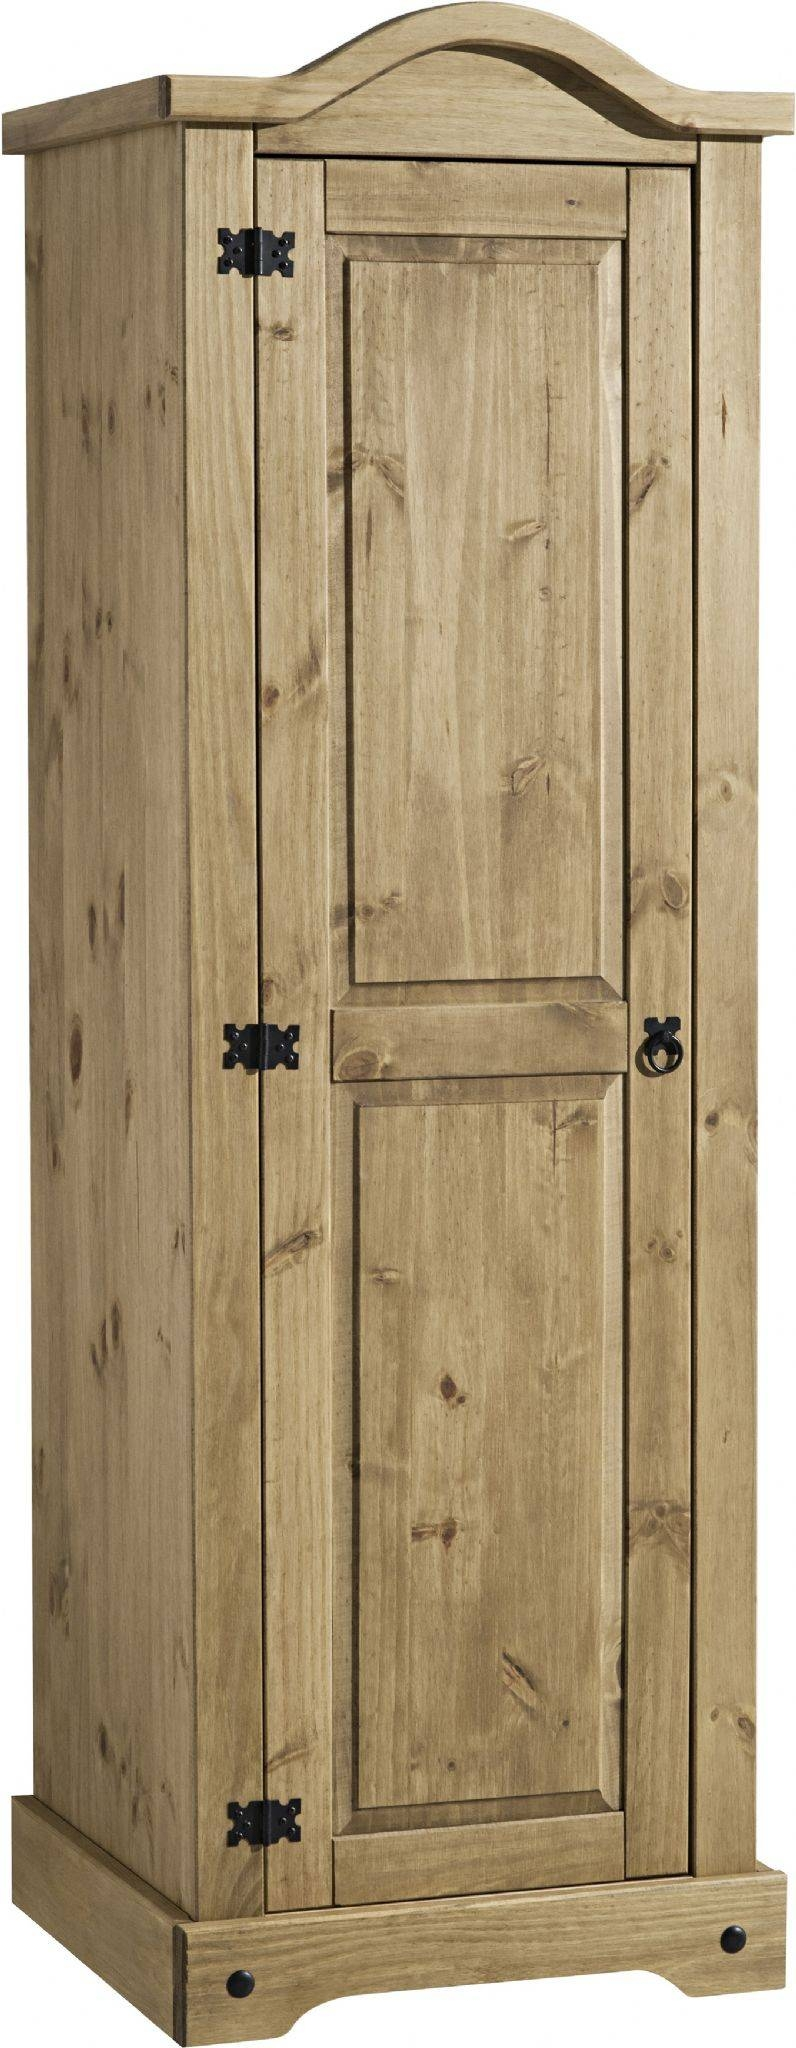 Corona Single One Mirrored Door 1 Drawer Armoire Wardrobe intended for One Door Mirrored Wardrobes (Image 4 of 15)